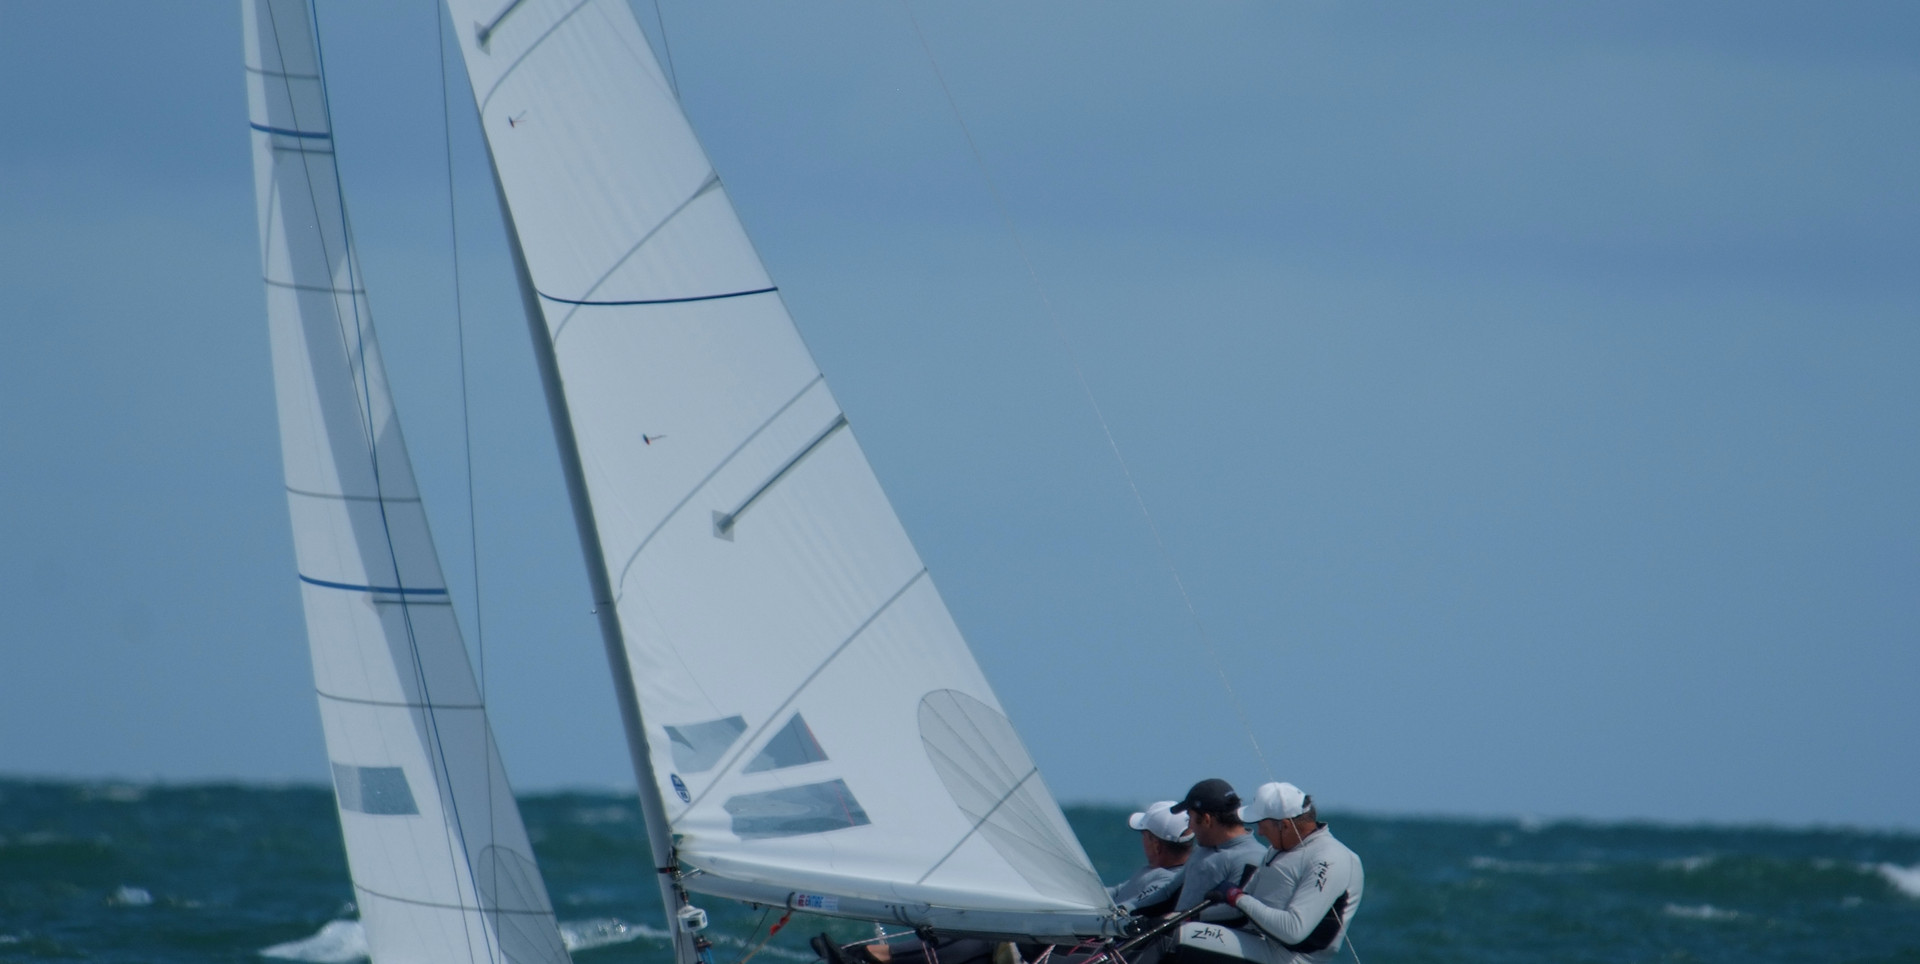 Andrew Palfrey heading upwind with John Bertrand and Ben Ainslie